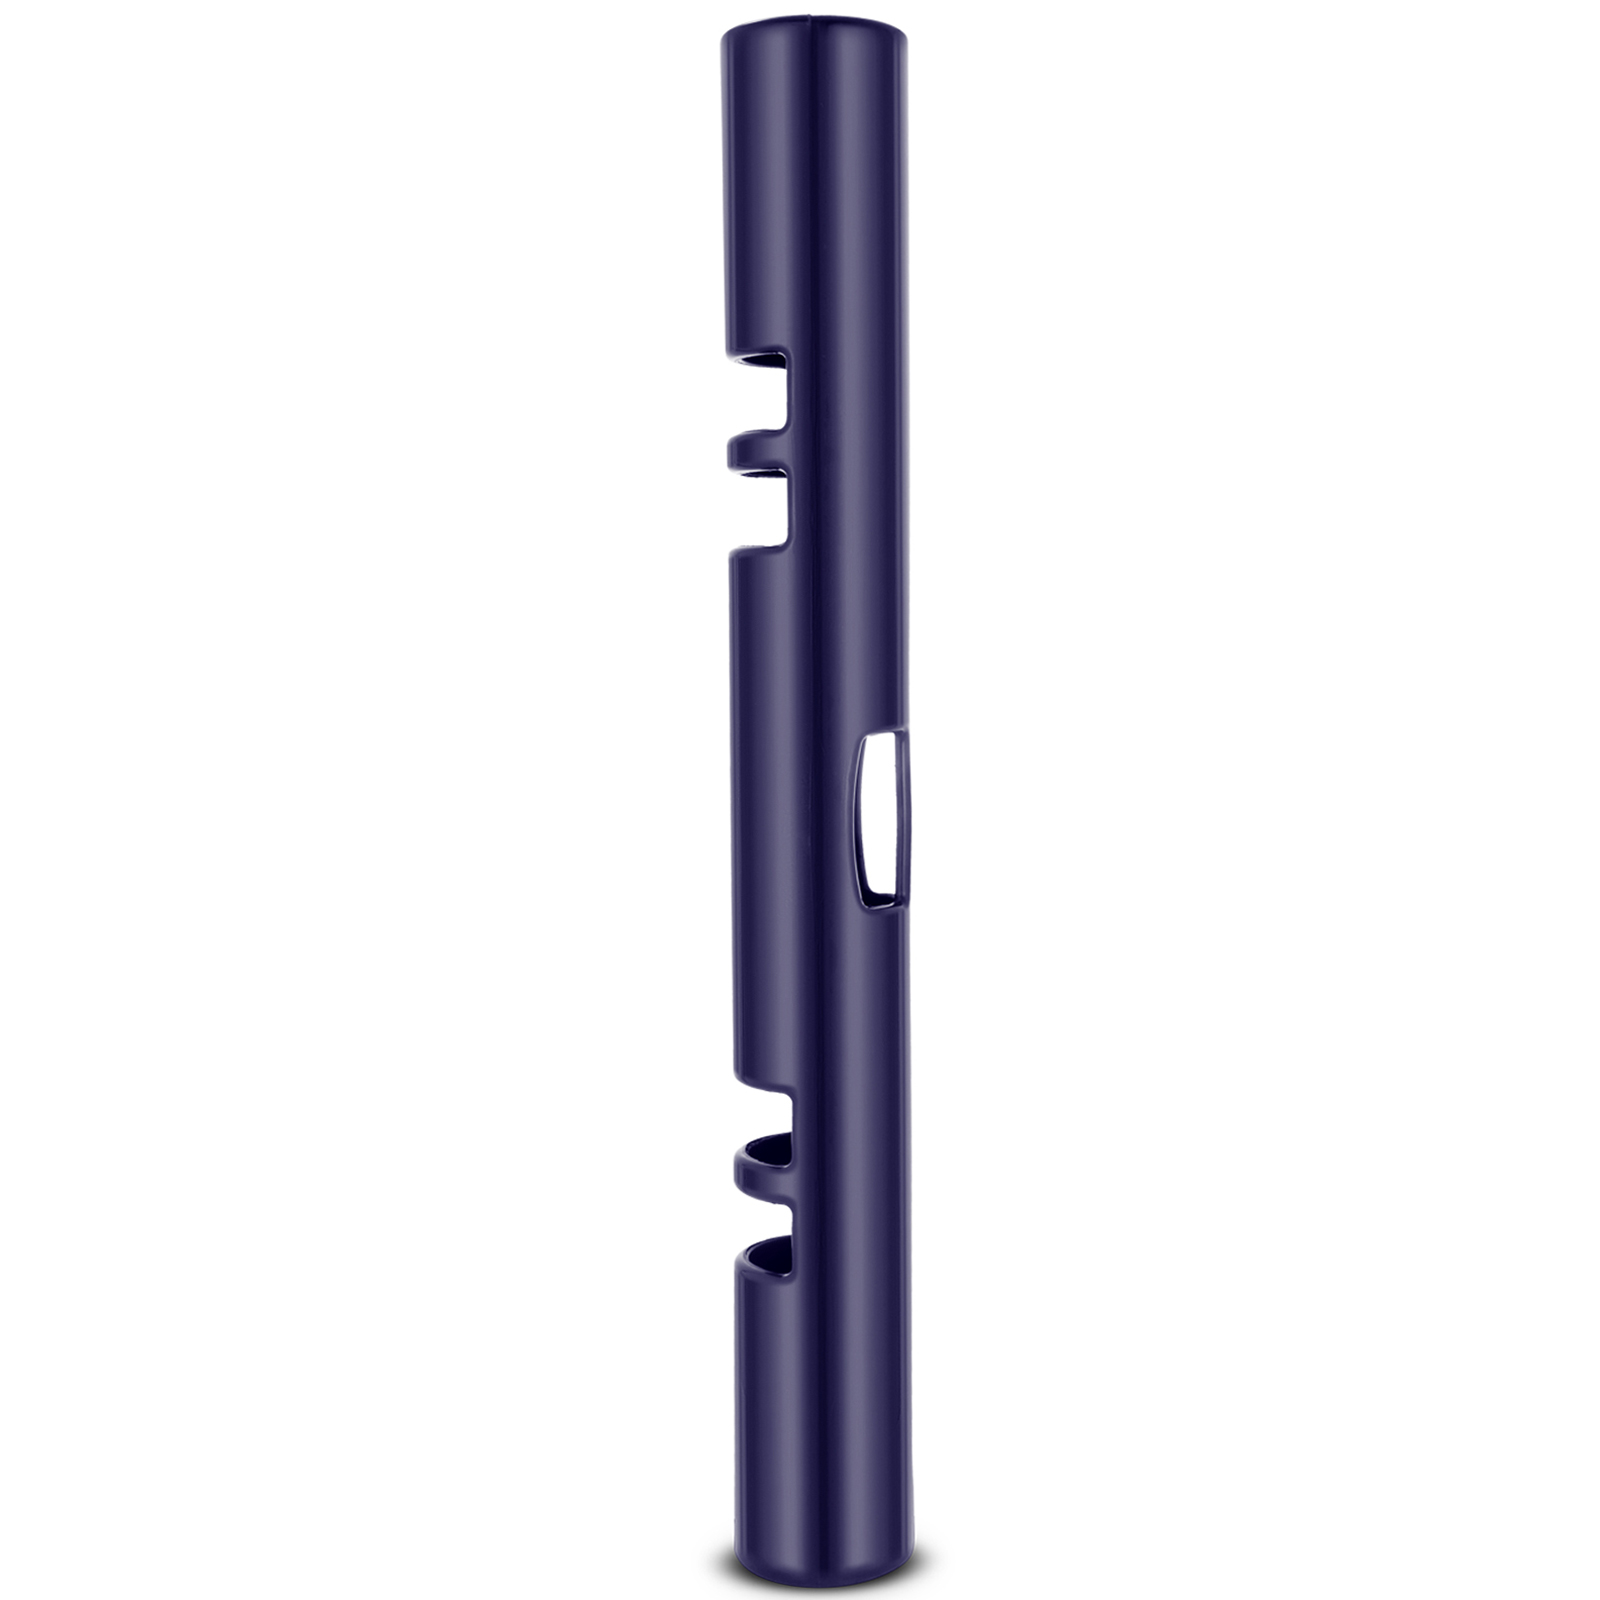 Vipr-Fitpro-Fitness-Tube-Loaded-Movement-Training-weightlifting-4-6-8-10-12-Kg thumbnail 167